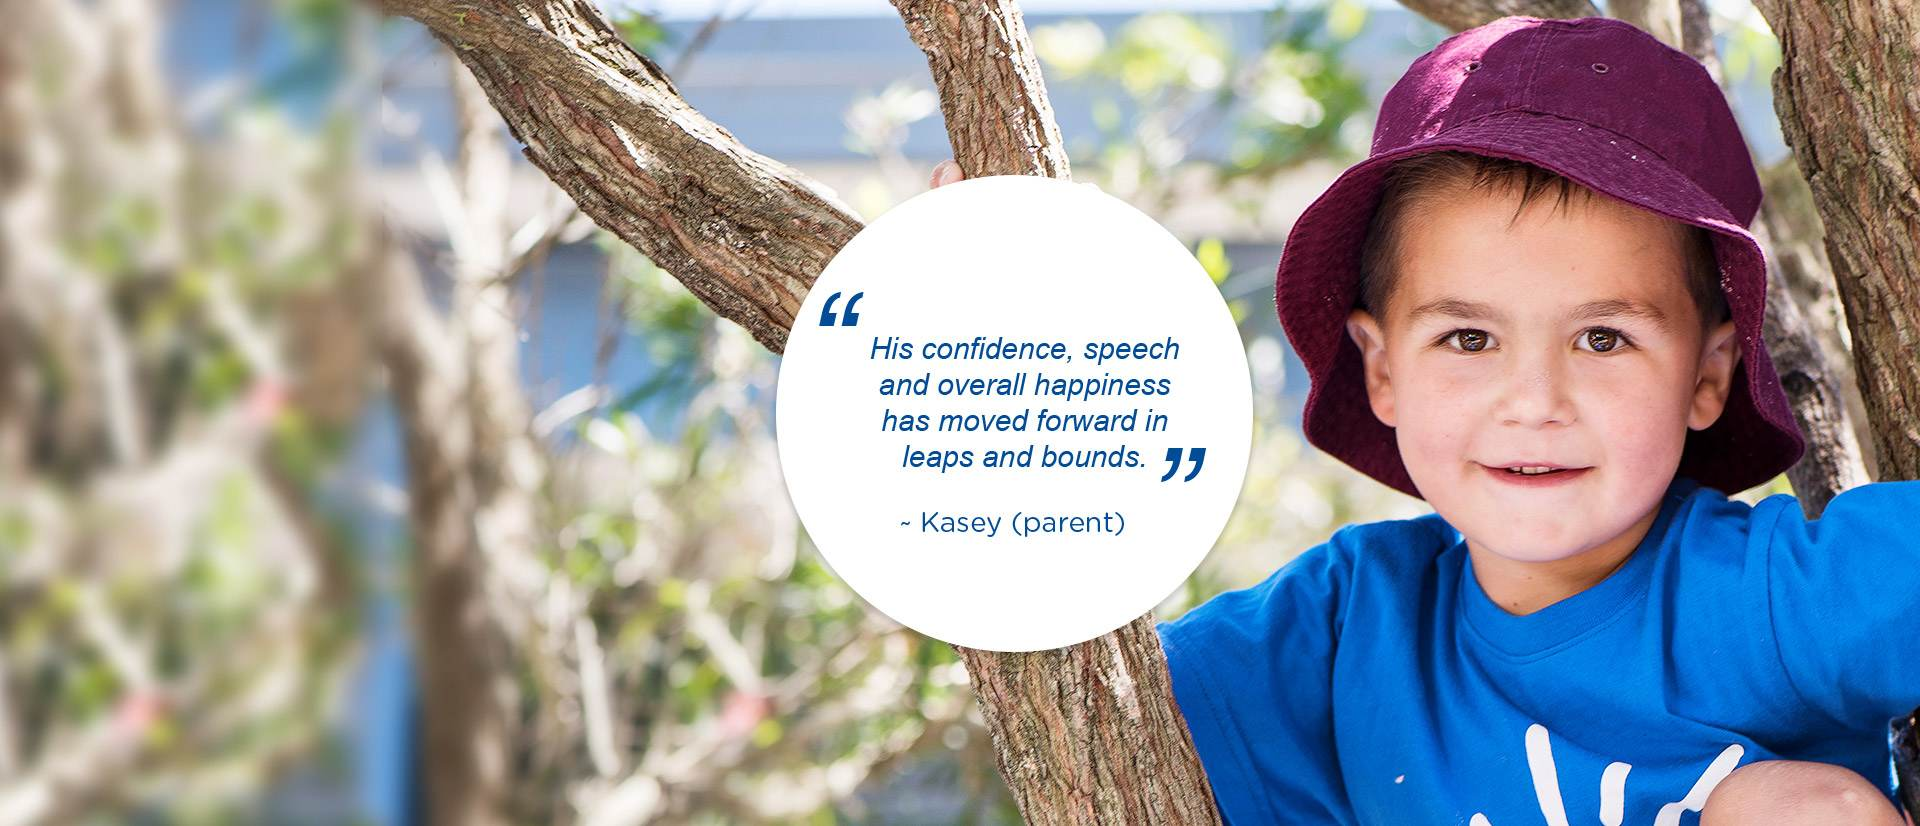 """His confidence, speech and overall happiness has moved forward in leaps and bounds."" - Kasey (parent)"